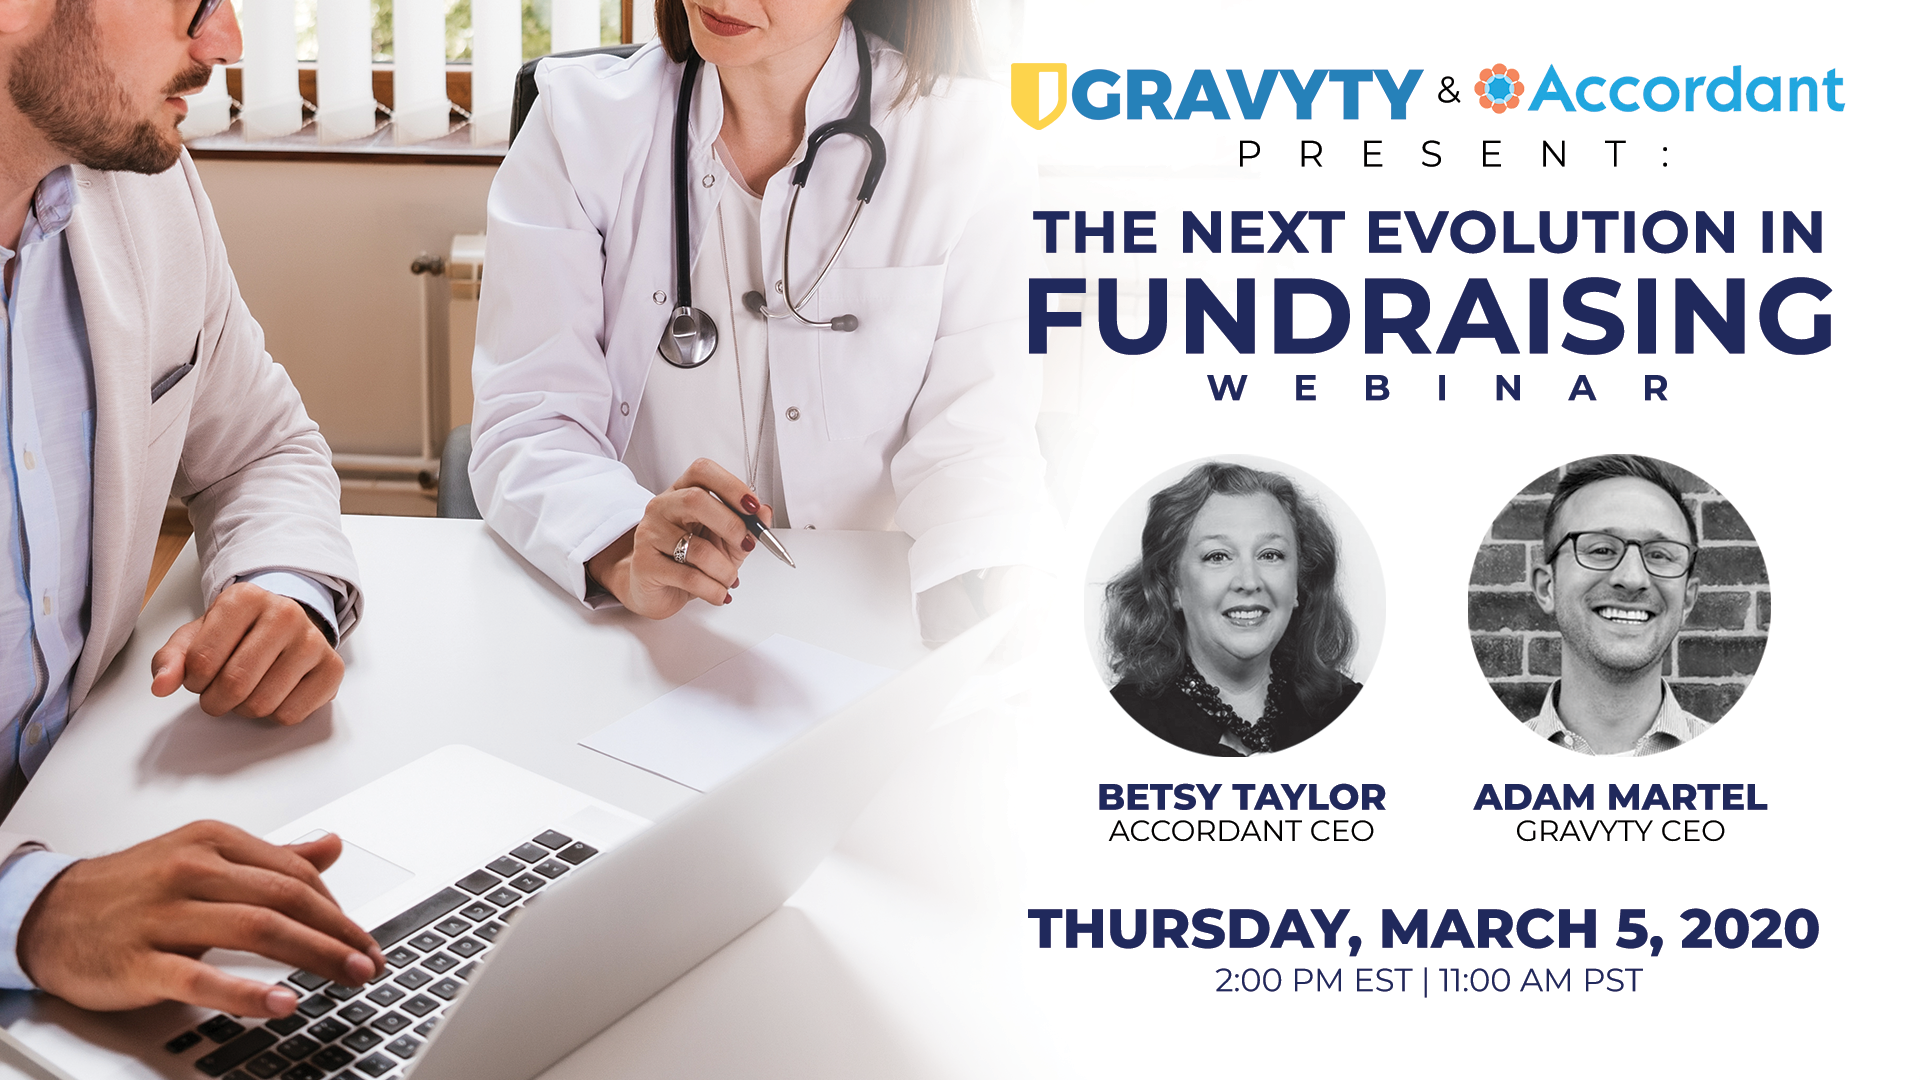 Claim Your Seat For Gravyty & Accordant's Webinar: The Next Evolution in Fundraising